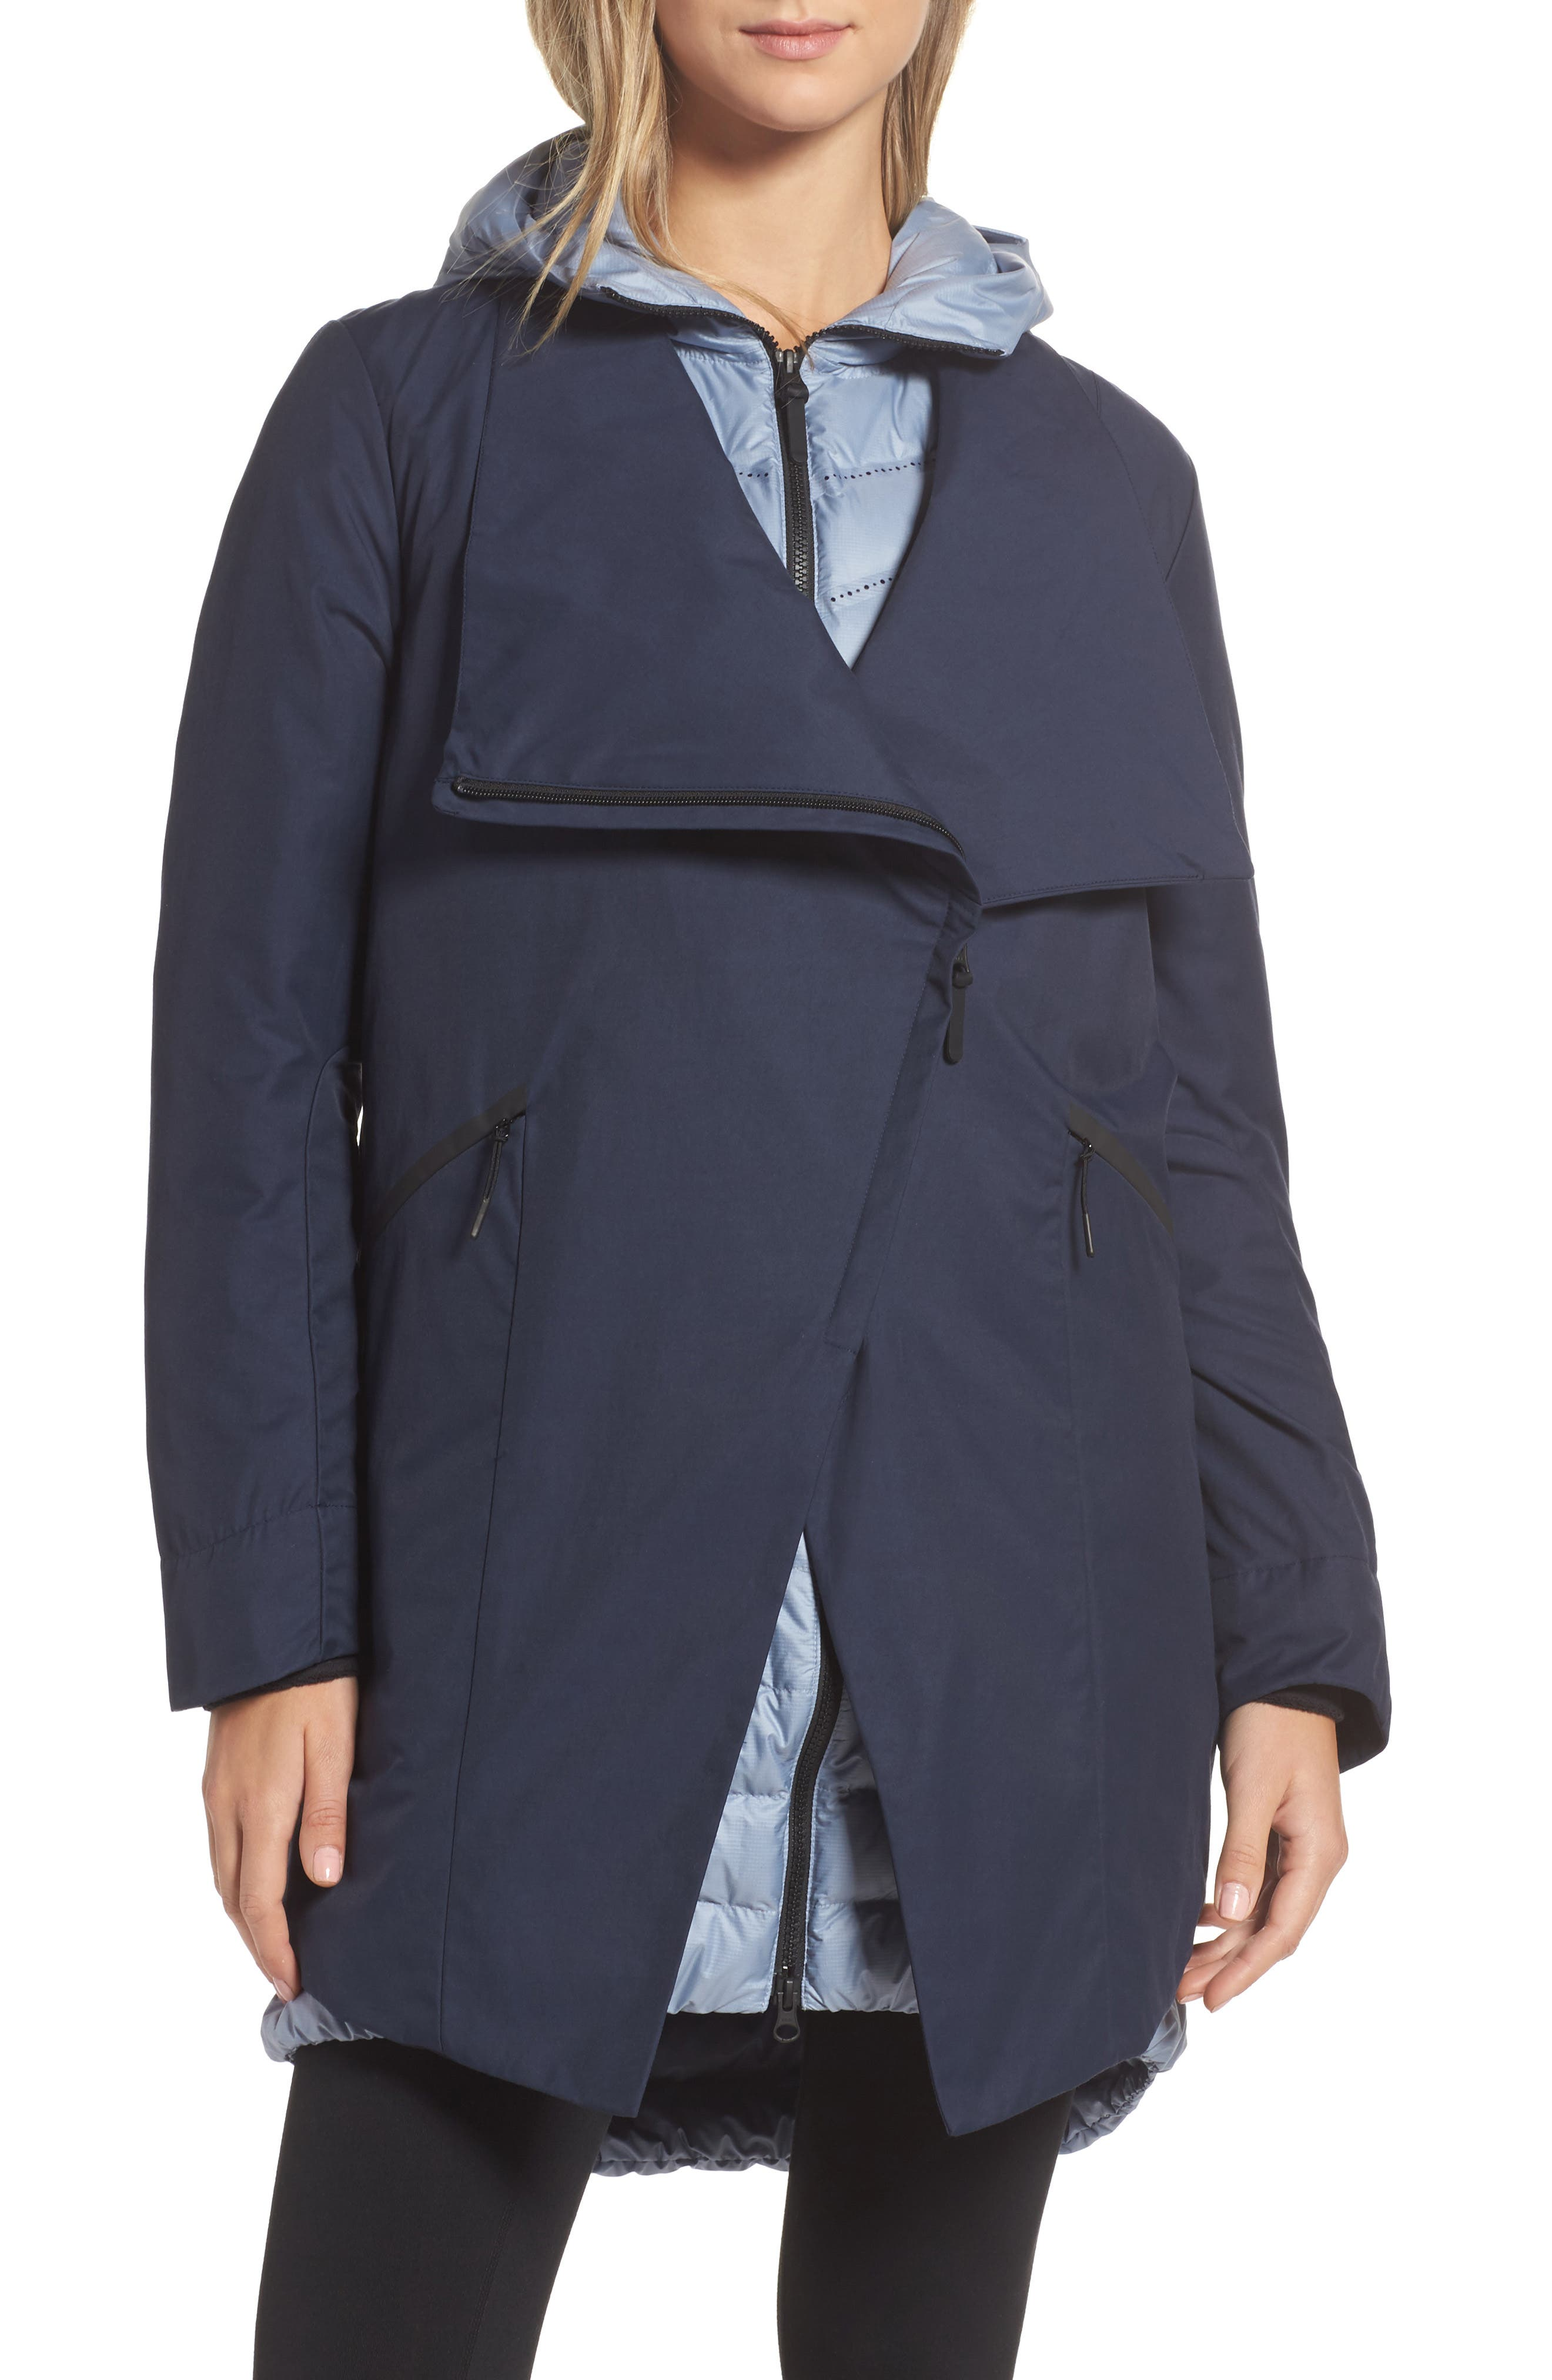 Nike Sportswear Women's AeroLoft 3-in-1 Down Fill Parka